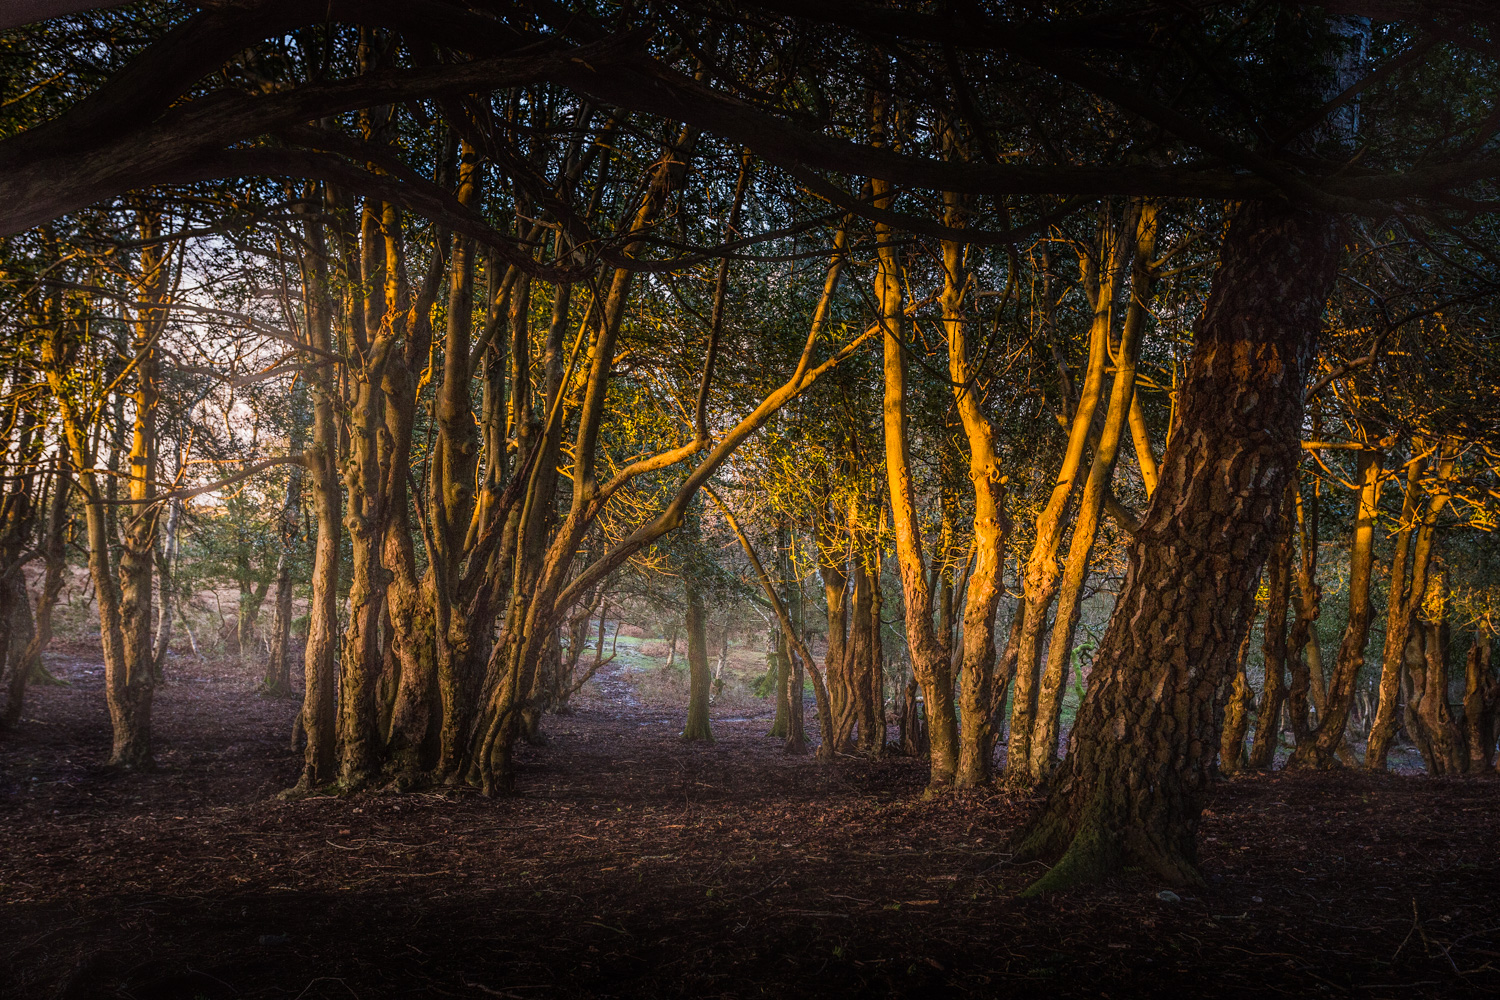 Low sun cutting across trees in the New Forest